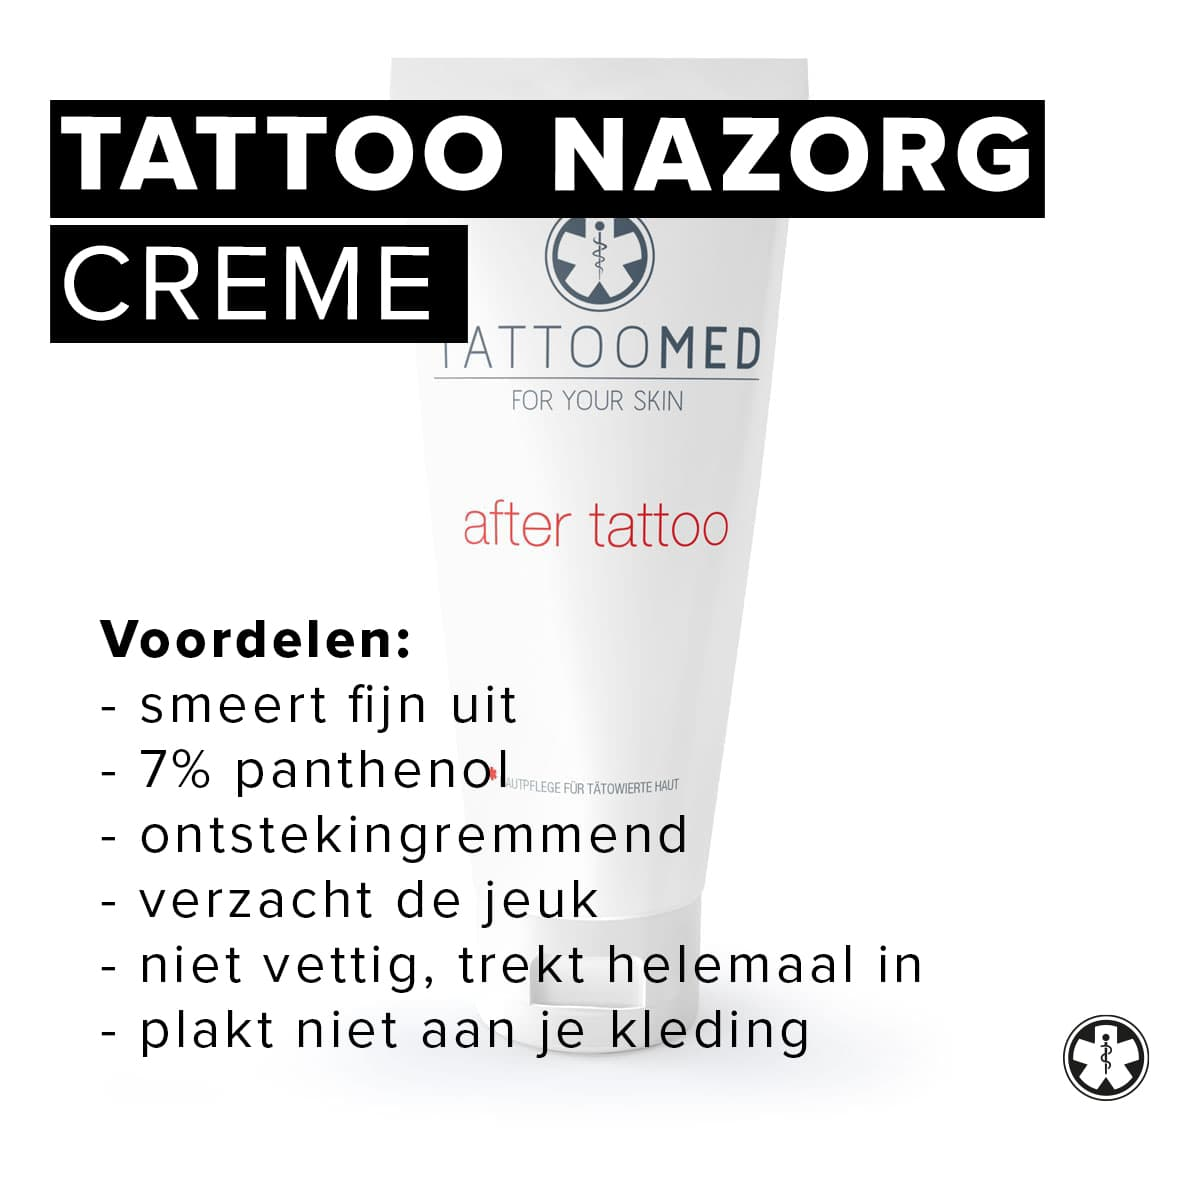 Tattoomed | Tattoo nazorg